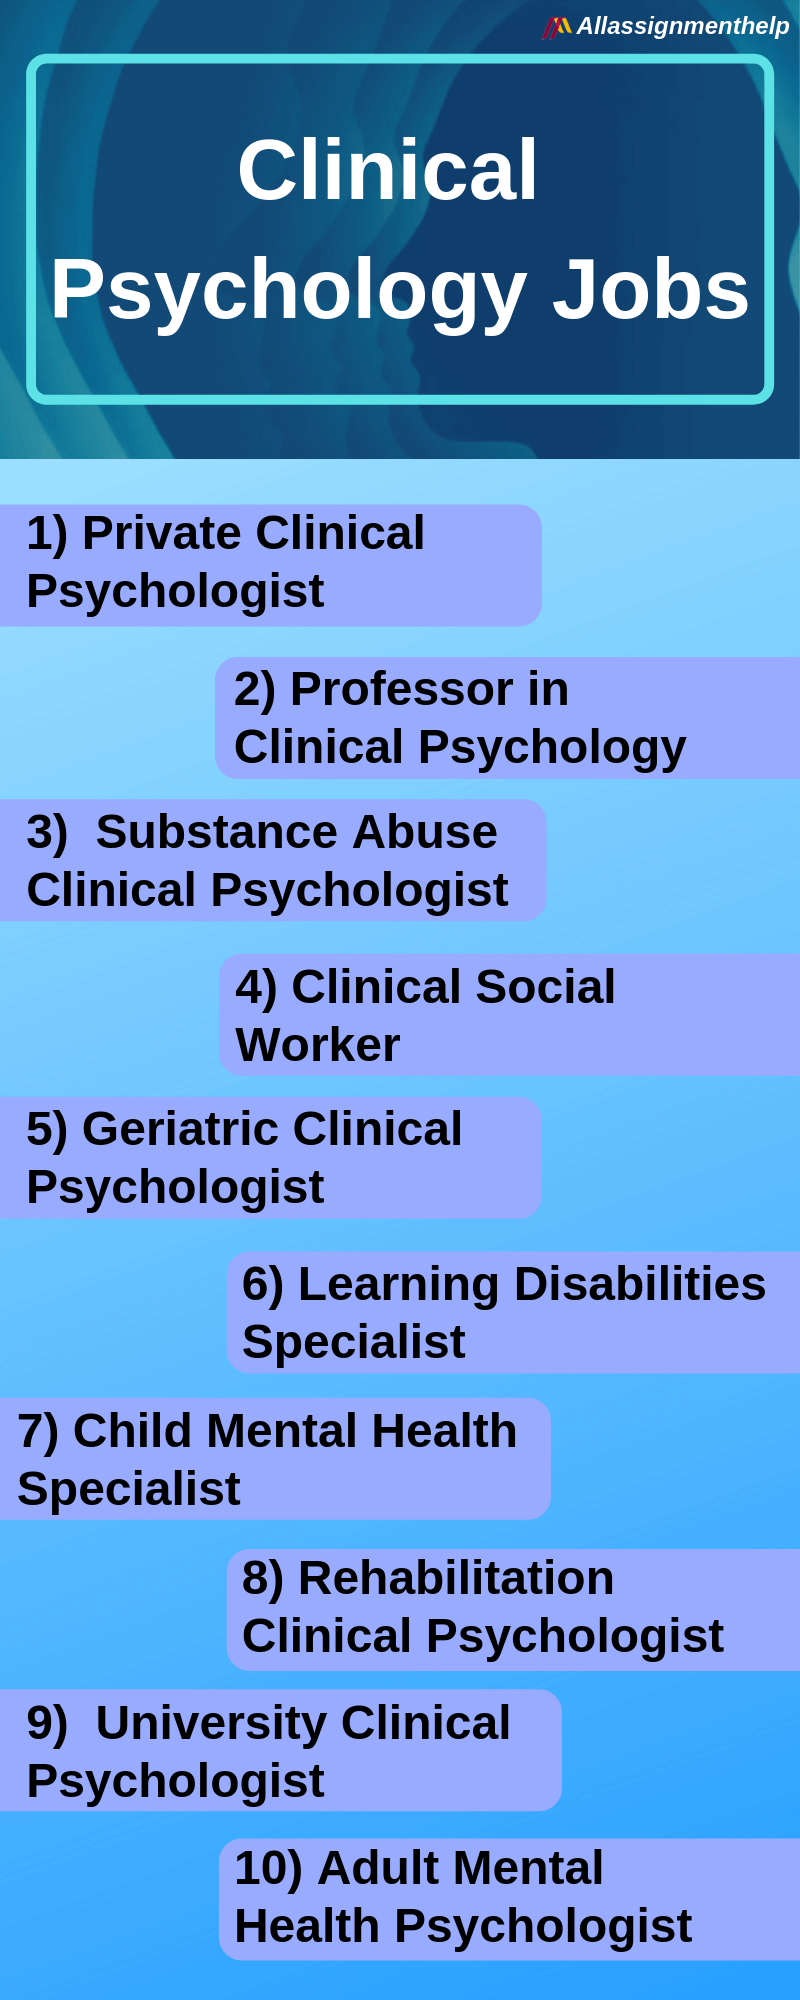 Clinical psychology jobs.png